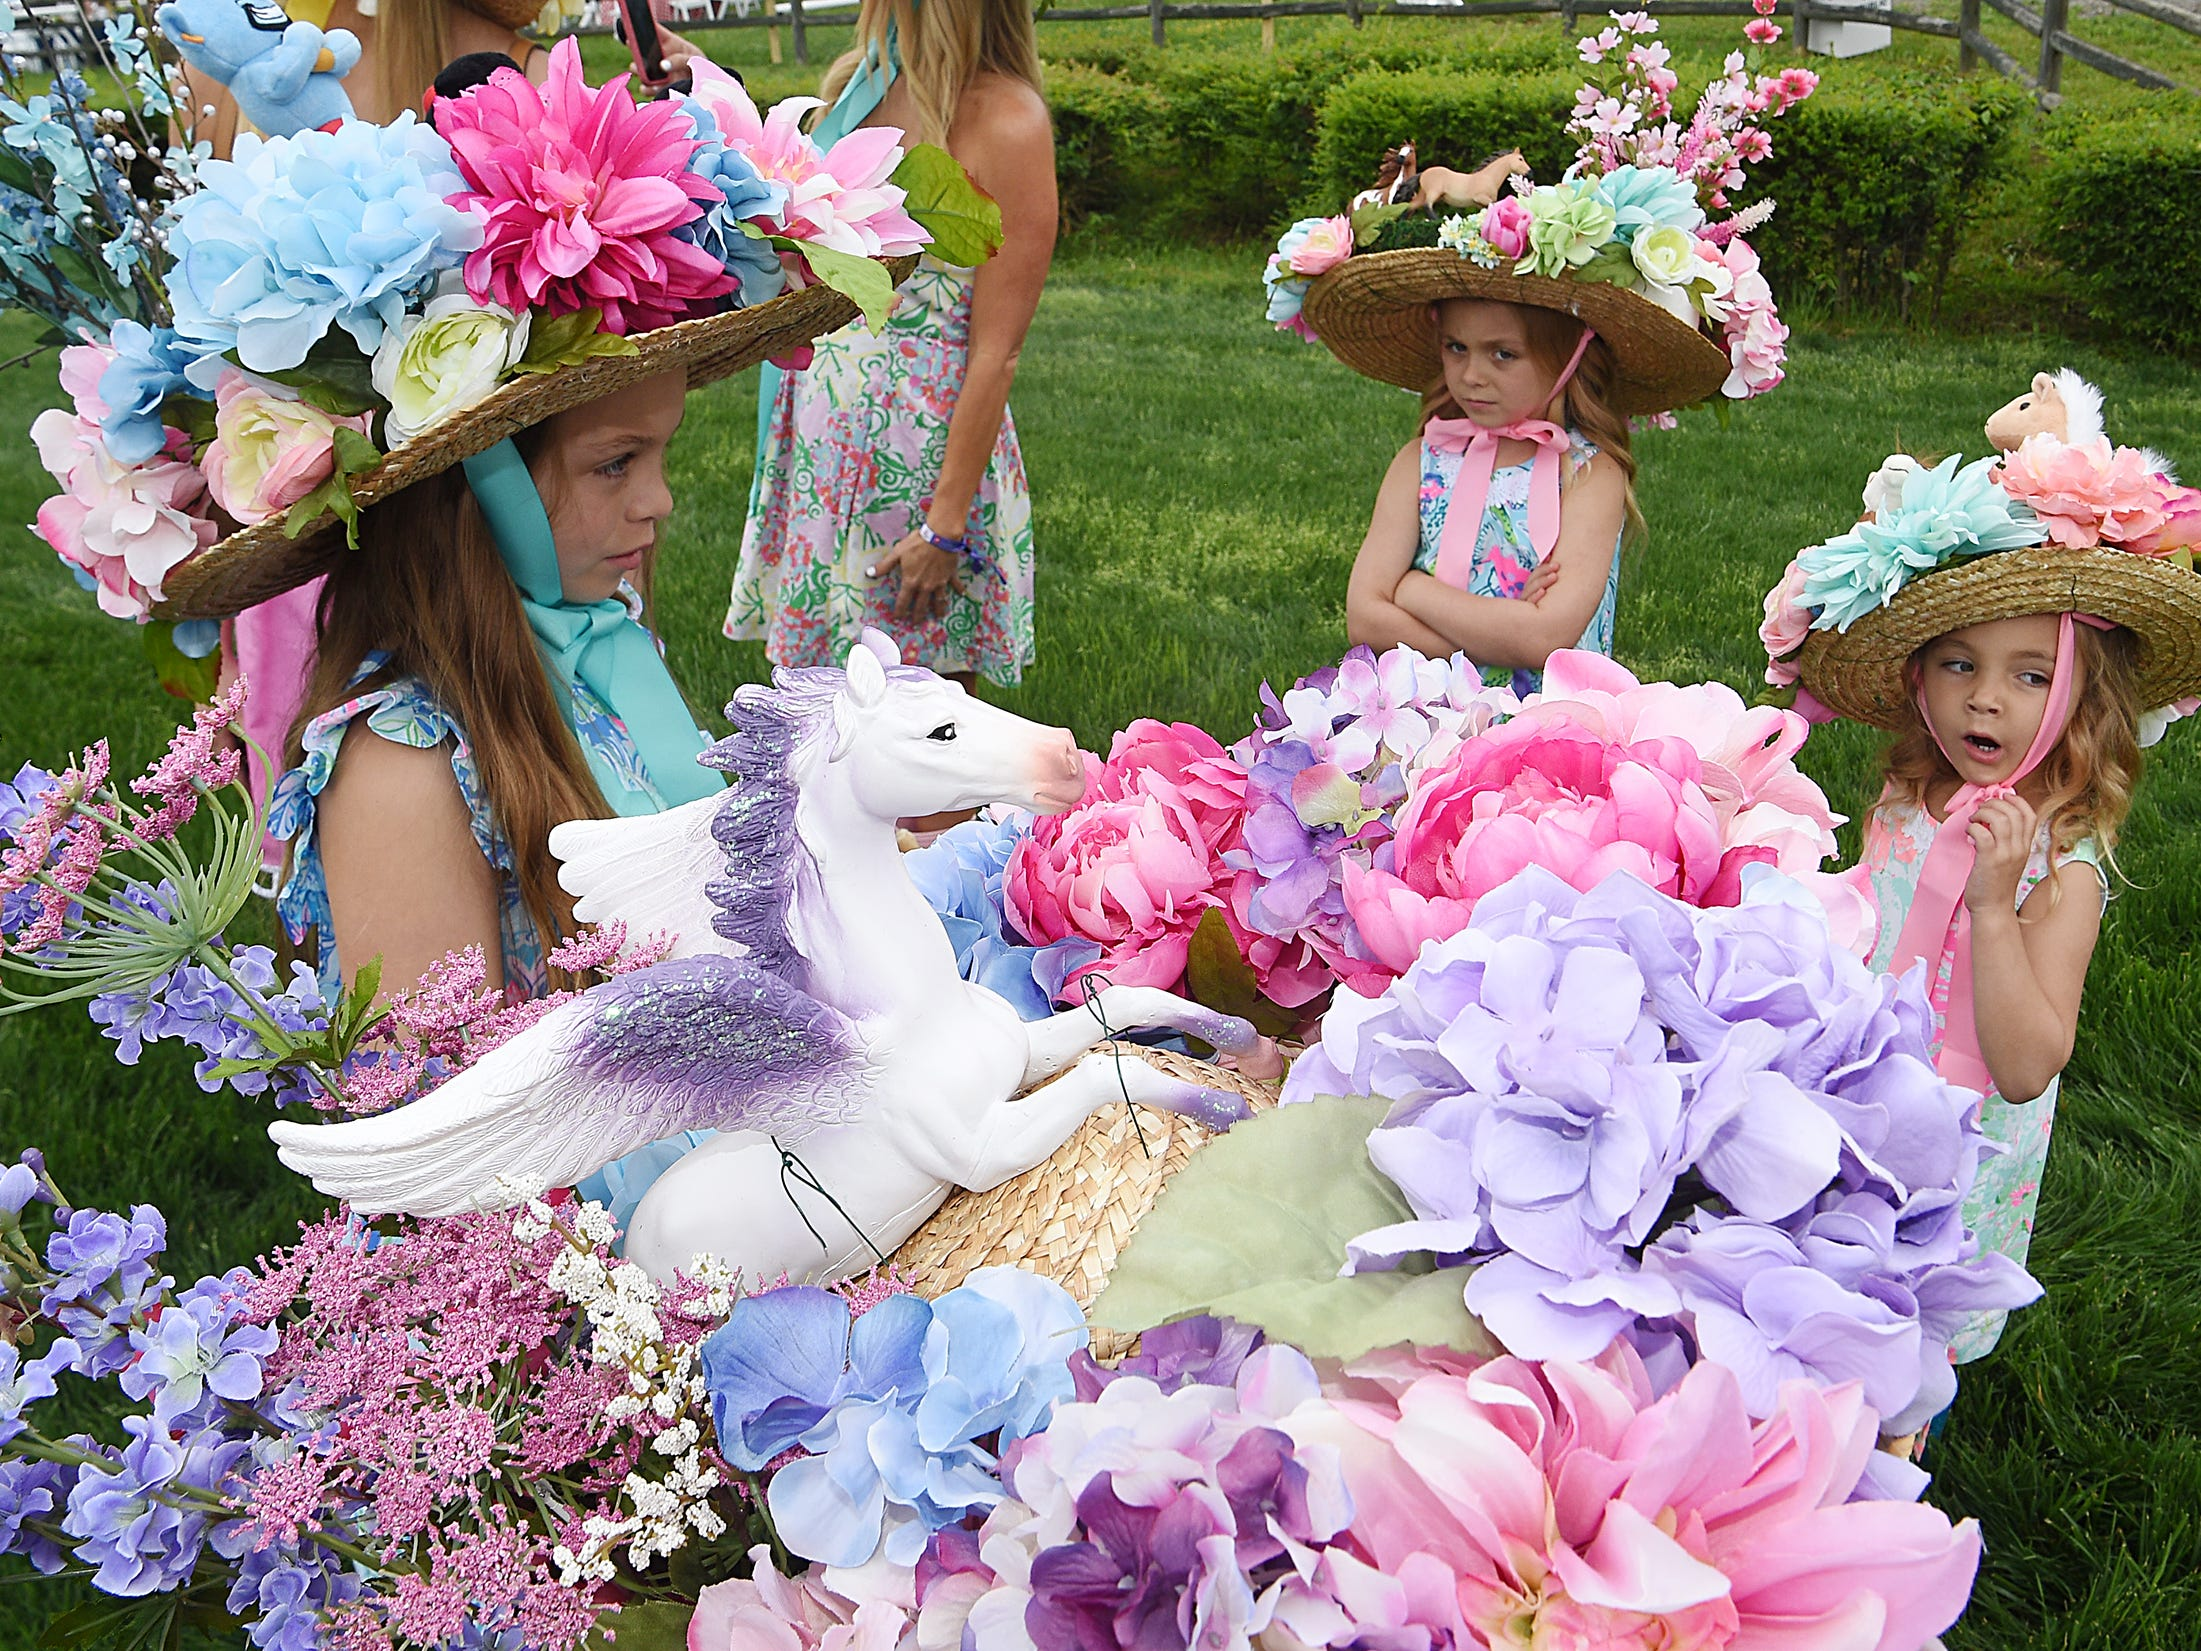 The Reimold family of Franklin designed and made their own hats for the 78th Iroquois Steeplechase at Percy Warner Park in Nashville on Saturday May 11, 2019.